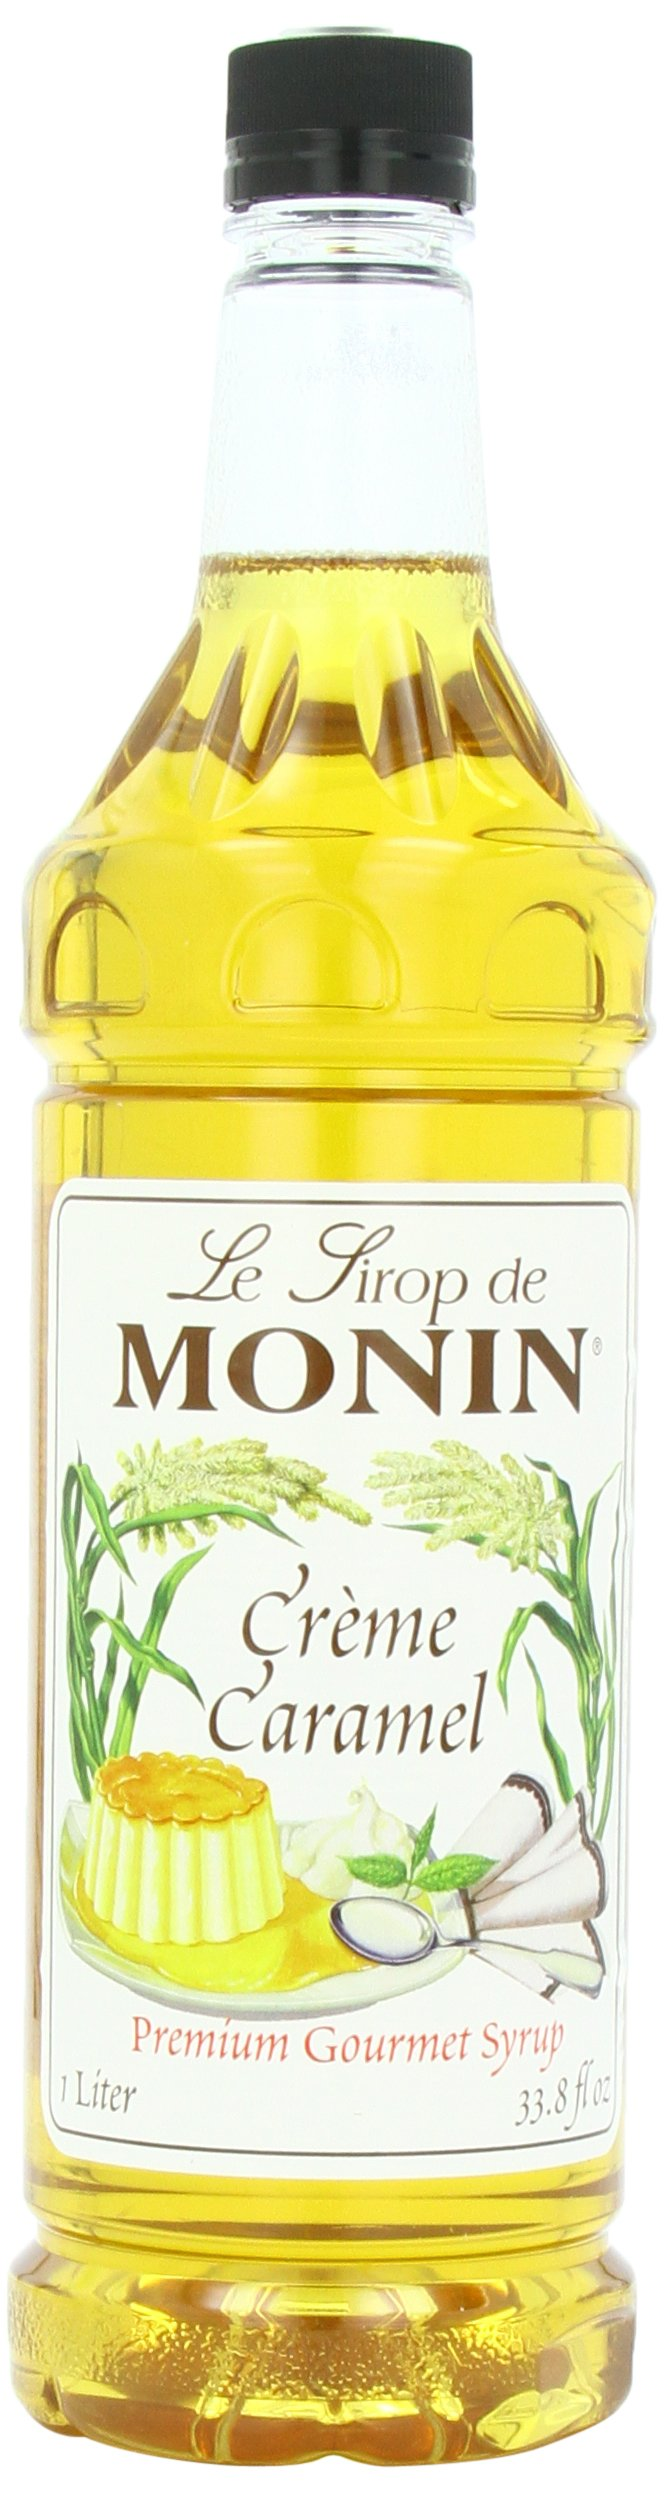 Monin Flavored Syrup, Creme Caramel, 33.8-Ounce Plastic Bottles (Pack of 4)